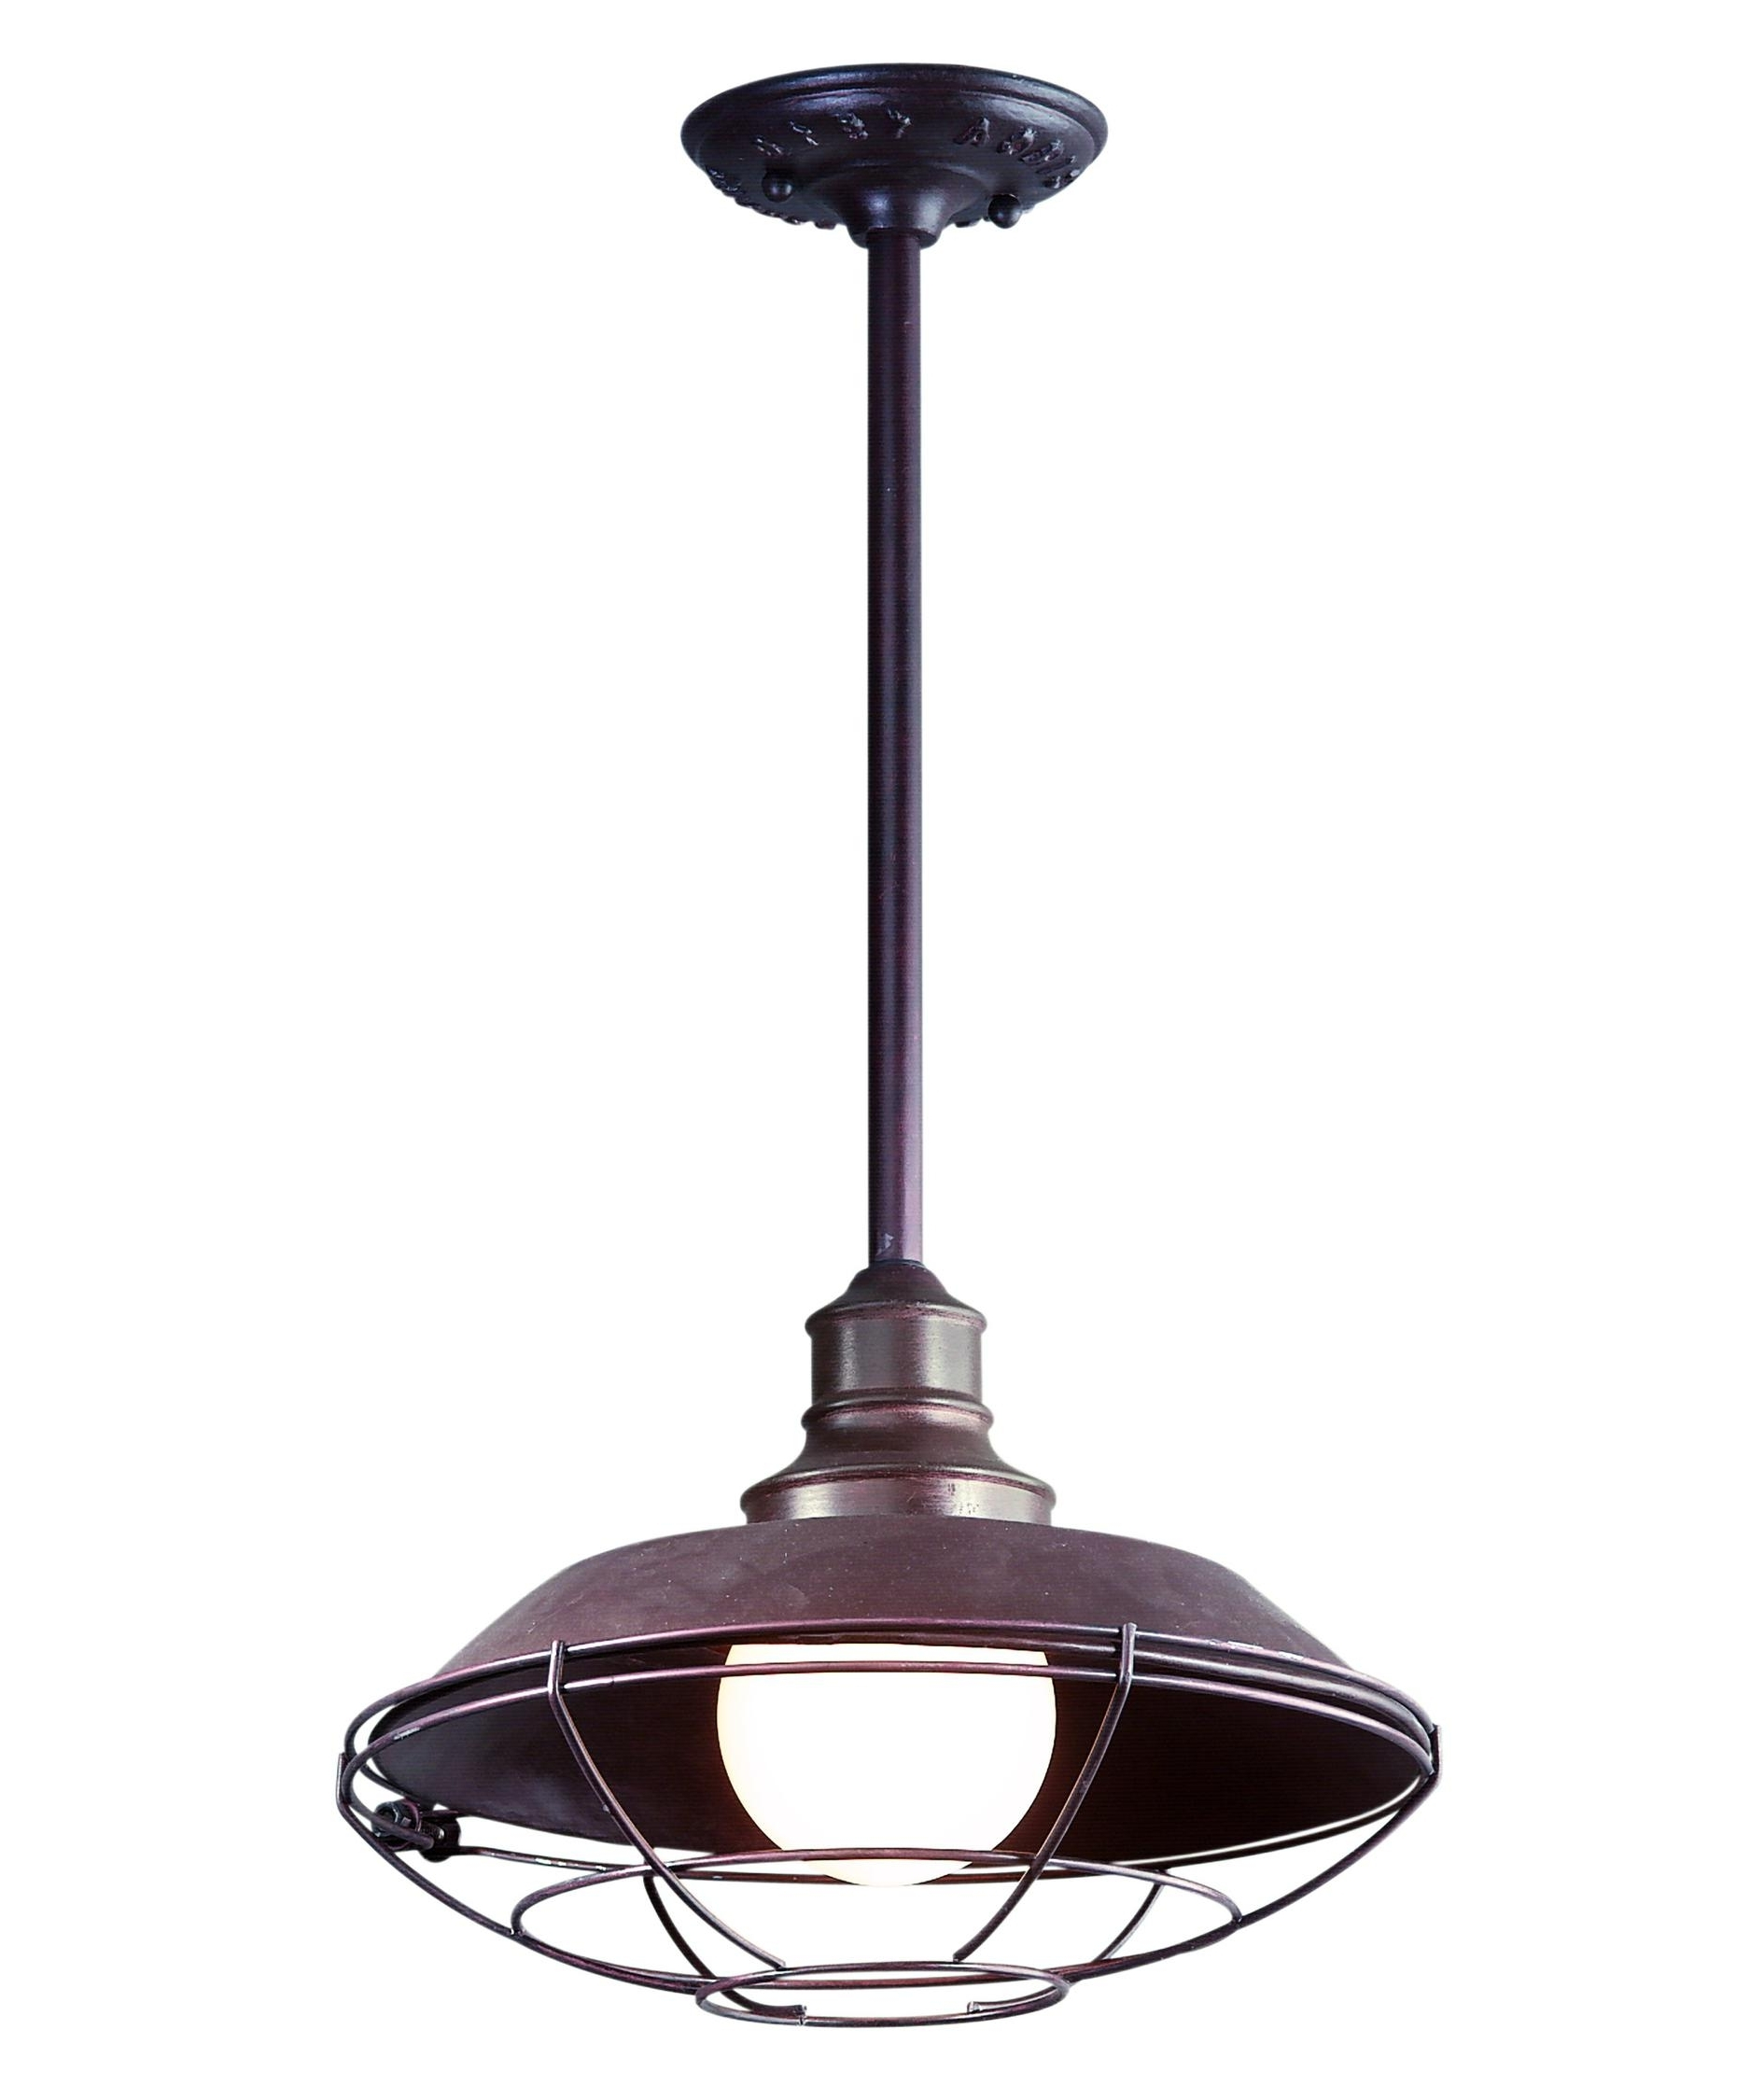 Troy Lighting F9273 Circa 1910 12 Inch Wide 1 Light Outdoor Hanging Throughout 2018 Outdoor Rated Hanging Lights (View 17 of 20)